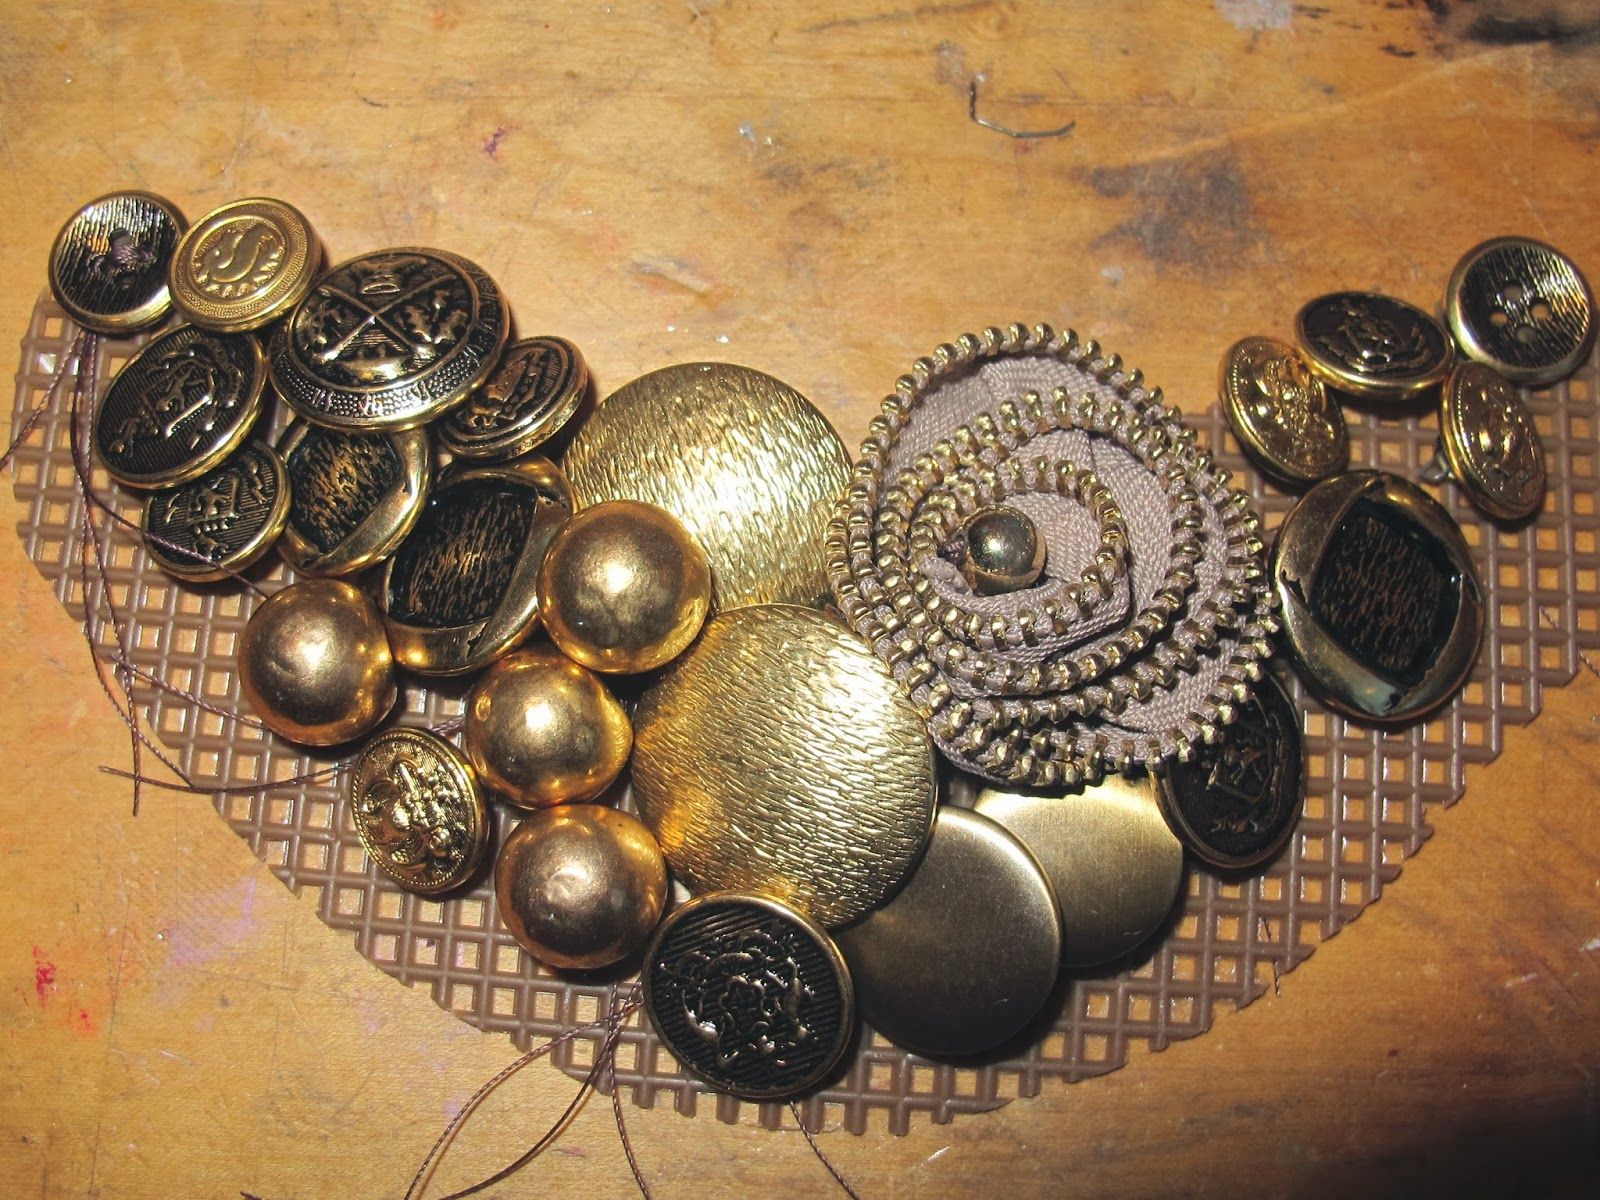 Remarkable, very button jewelry vintage have thought